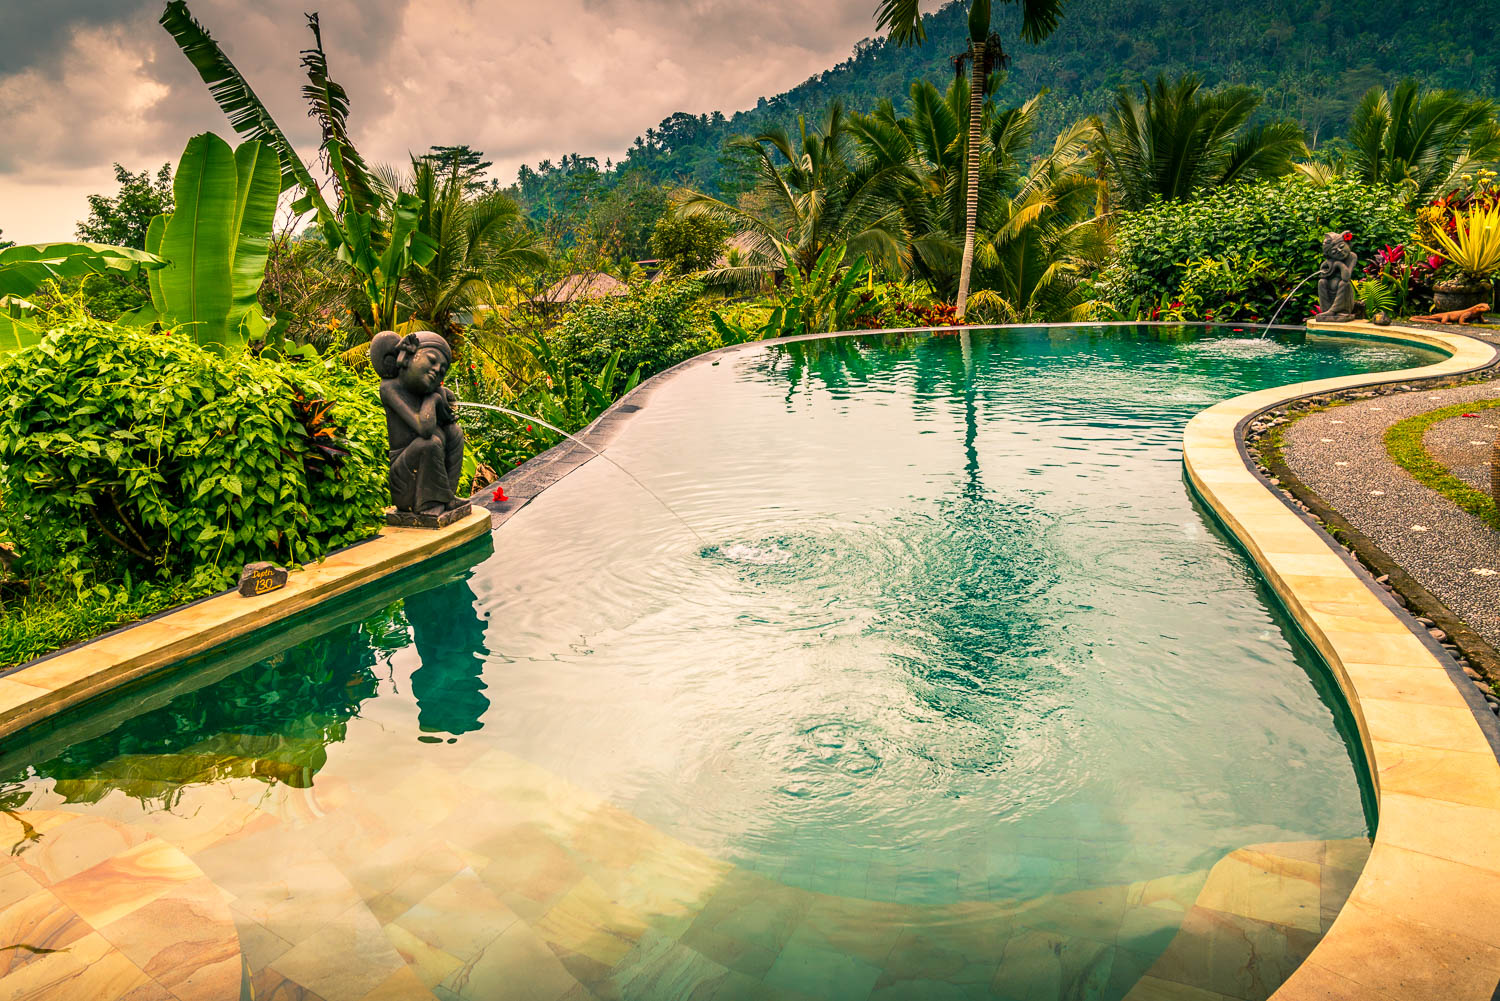 Sunset reflects in the pool at Suyra Shanti Villa. Beyond, emerald green .treetops and a deep green hill remind you that you're on the edge of a high hill.